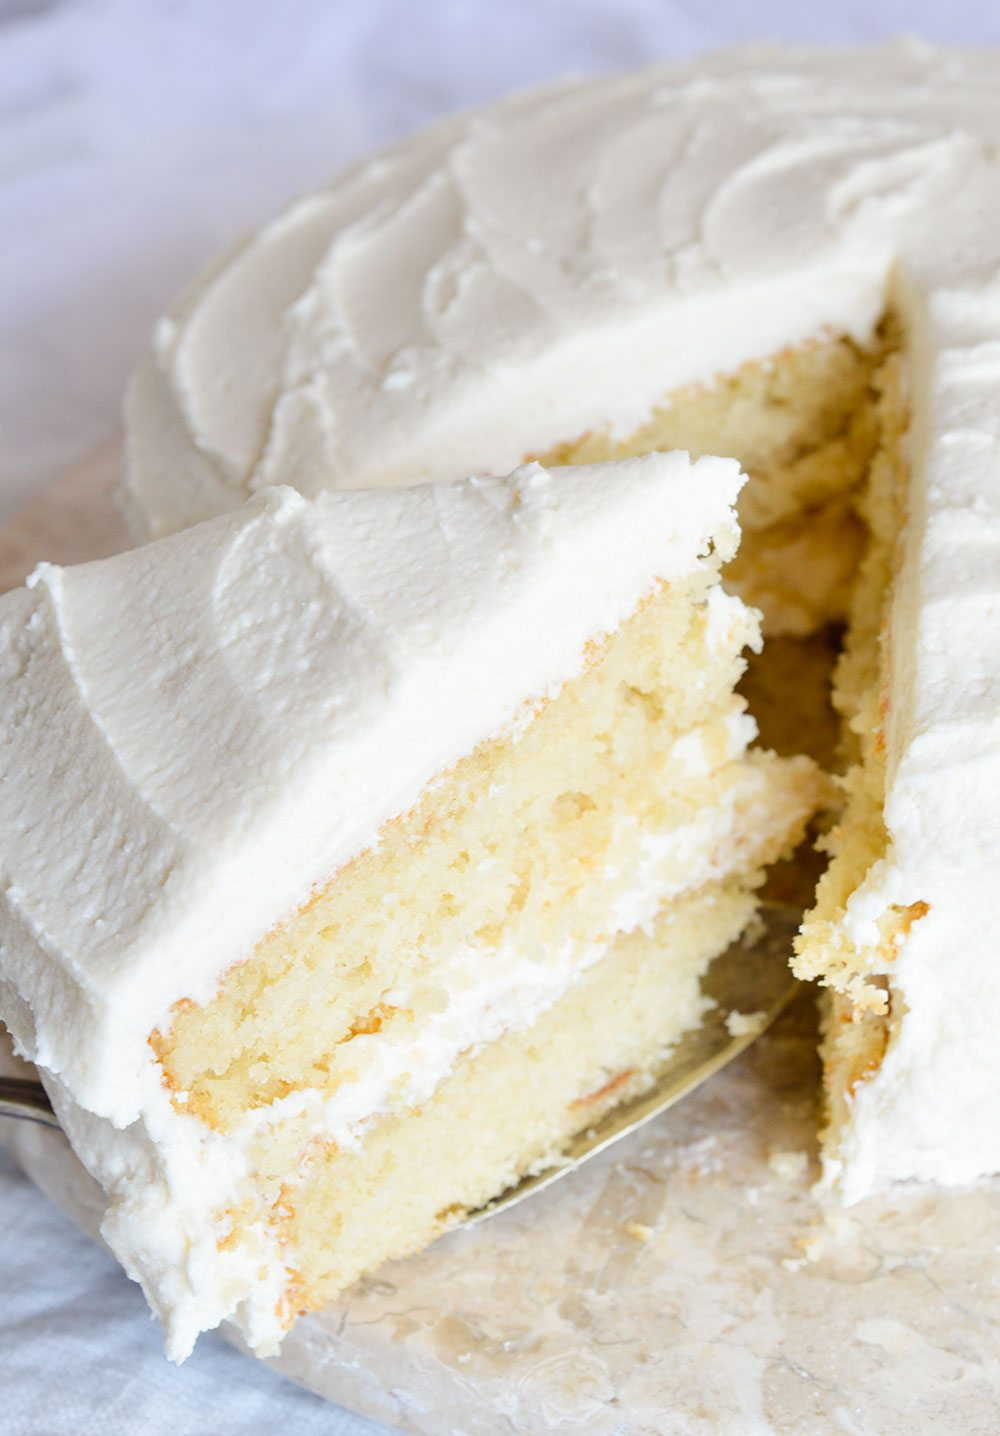 Bake A Cake Just Like Grandma Used To With This Vintage Buttermilk Vanilla Recipe From